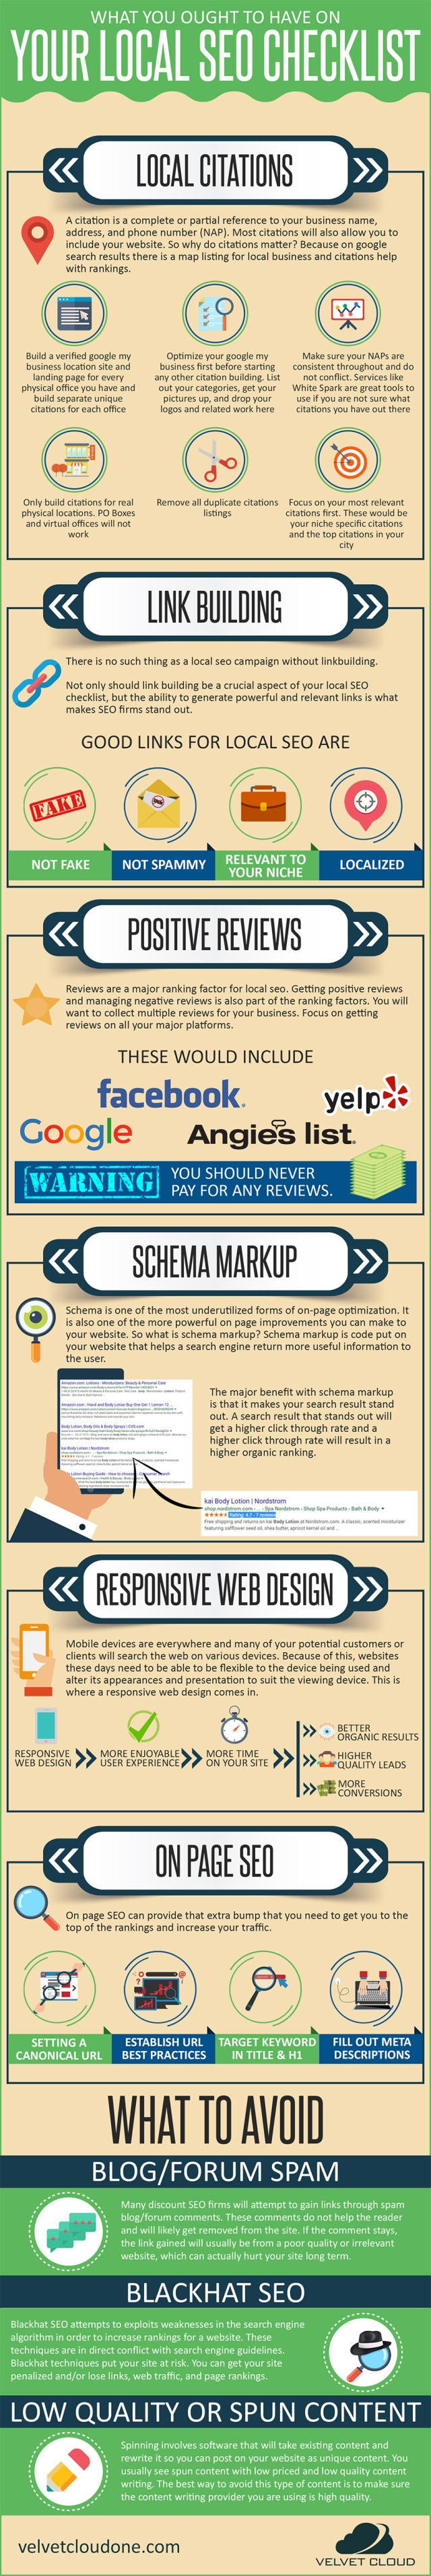 local_seo_checklist_info.jpg